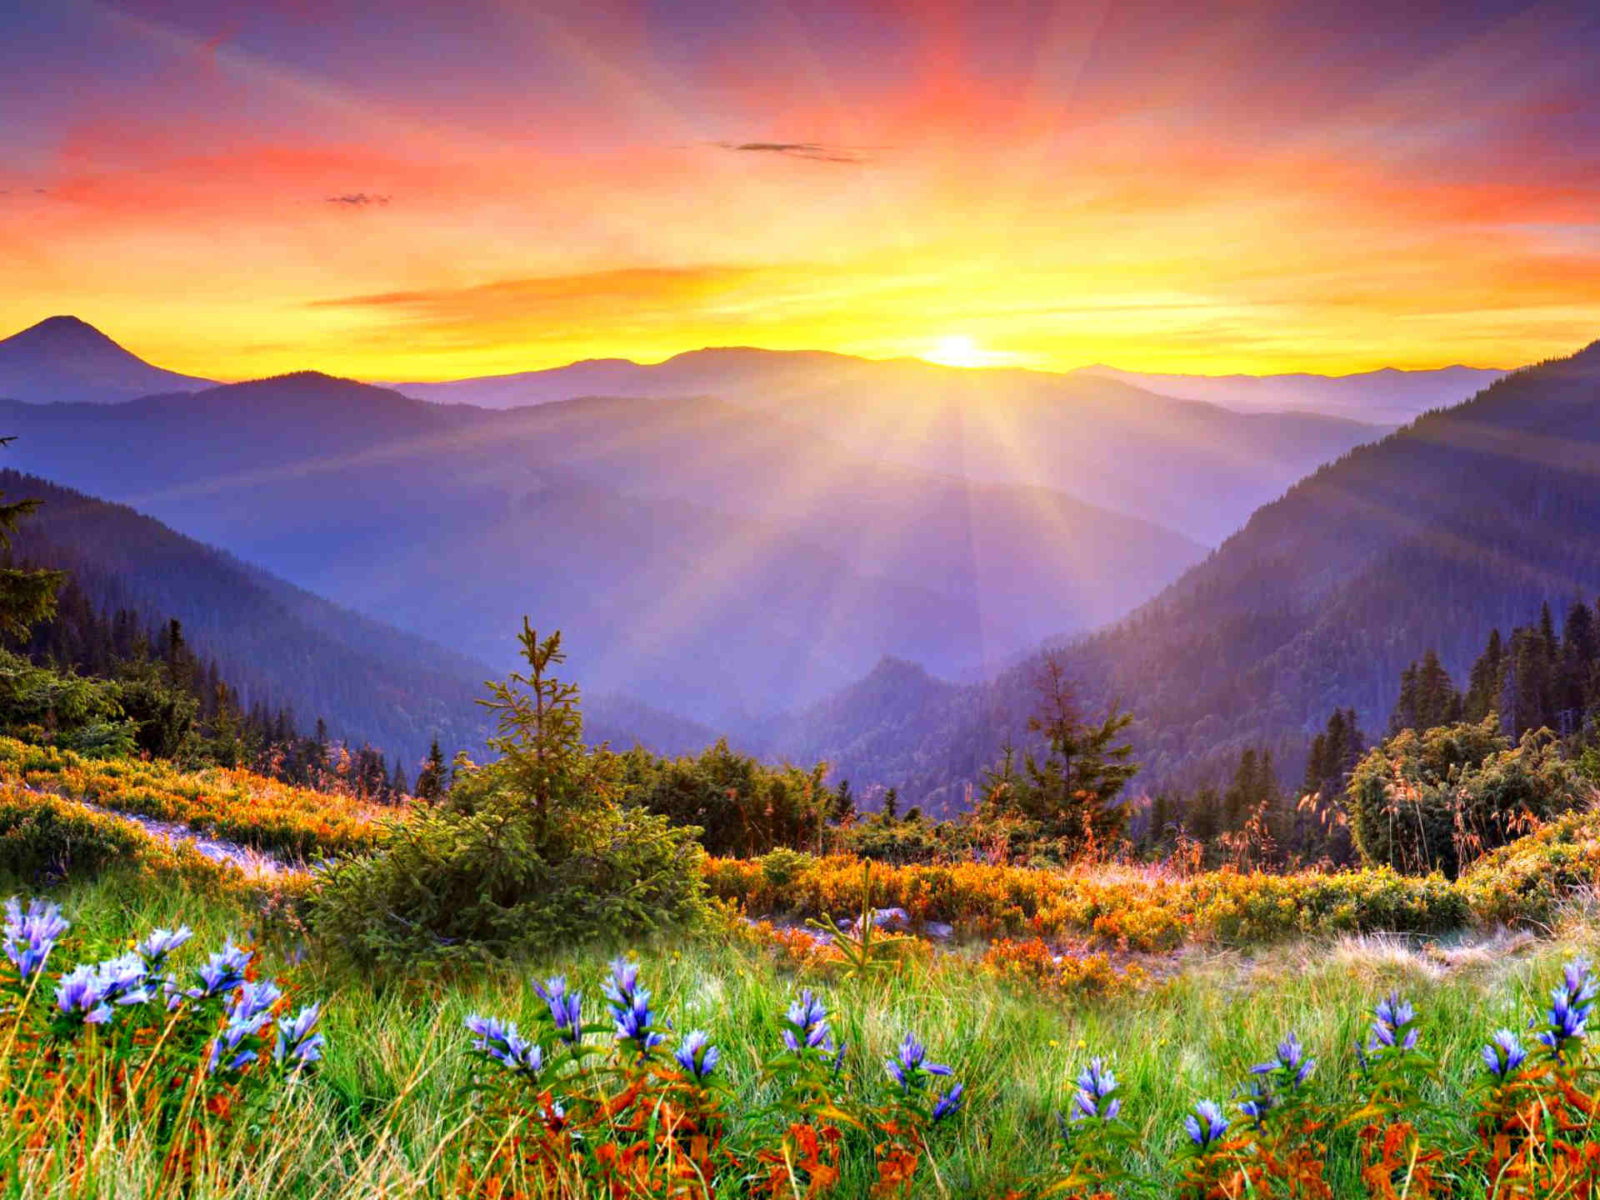 Beautiful Cars Wallpapers For Pc Awesome Sunset Sun Rays Forested Mountains Beautiful